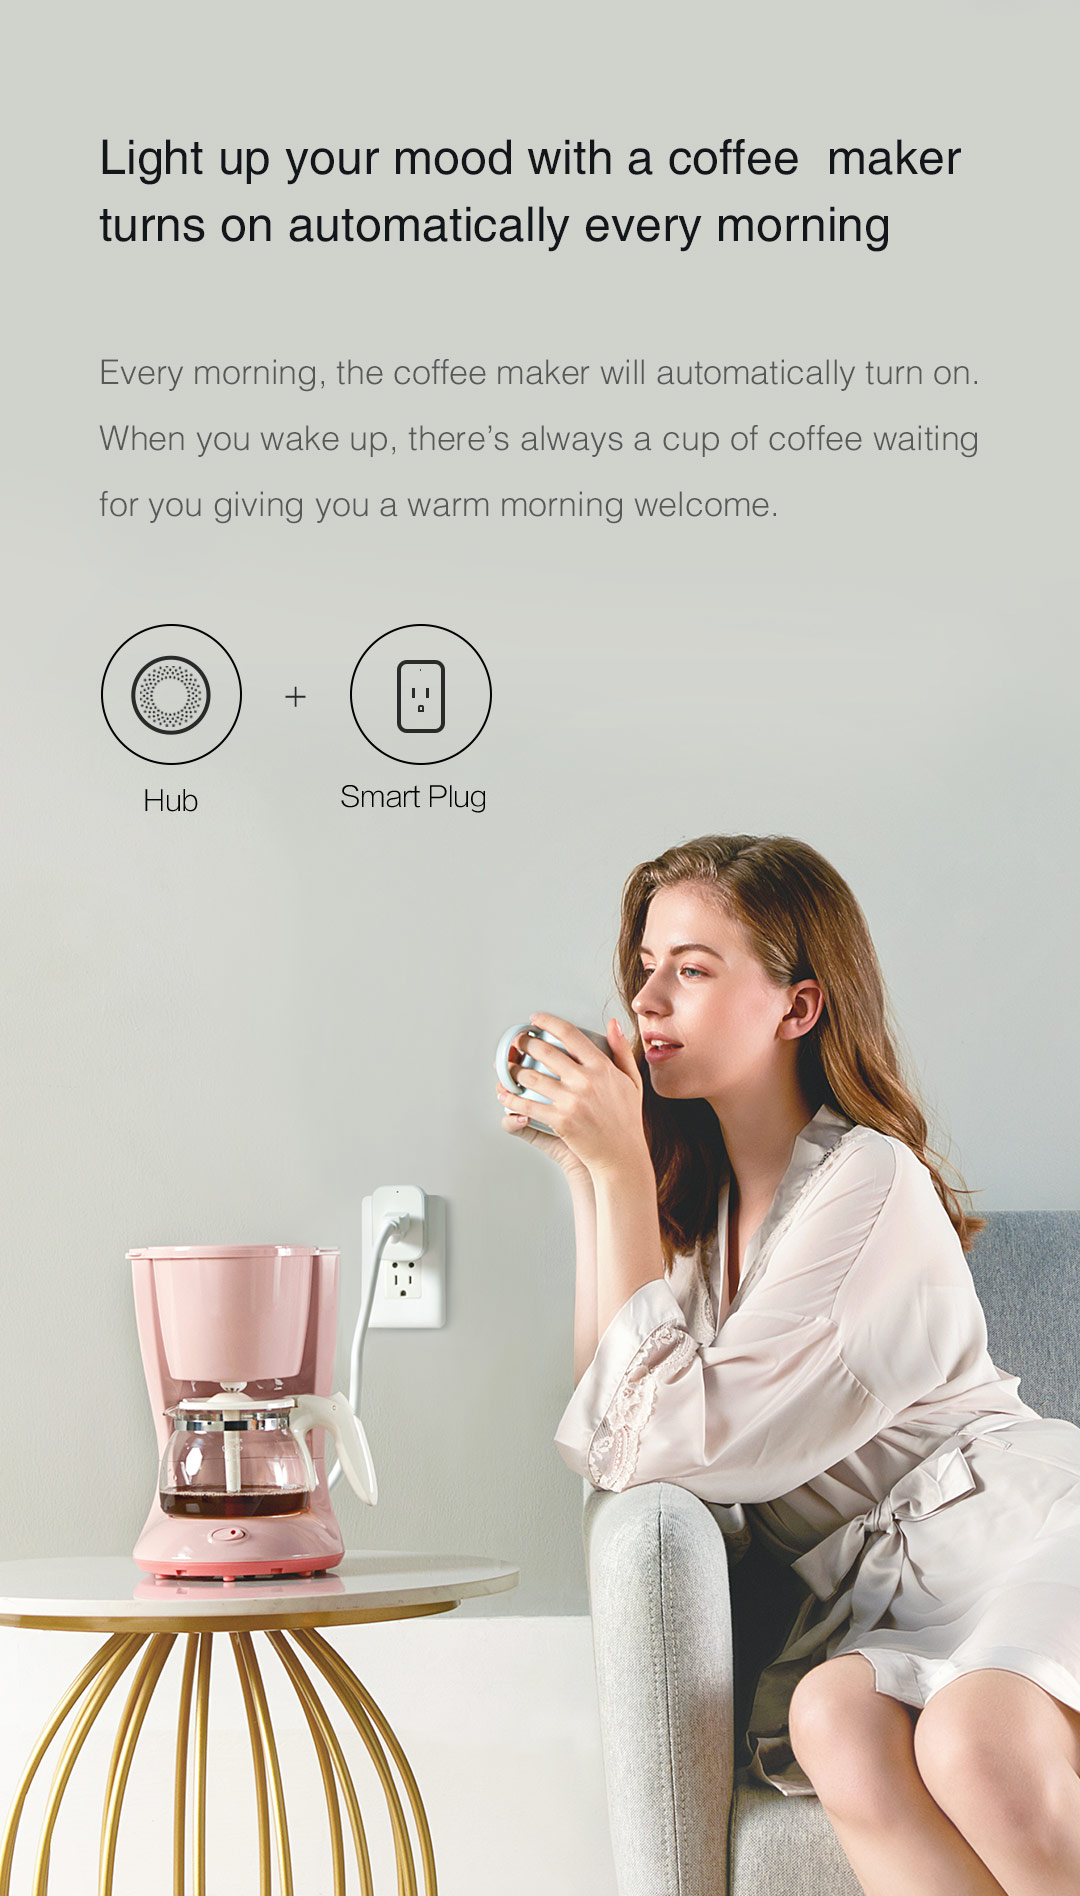 Hub + Smart Plug: Light up your mood with a coffee maker turns on automatically every morning